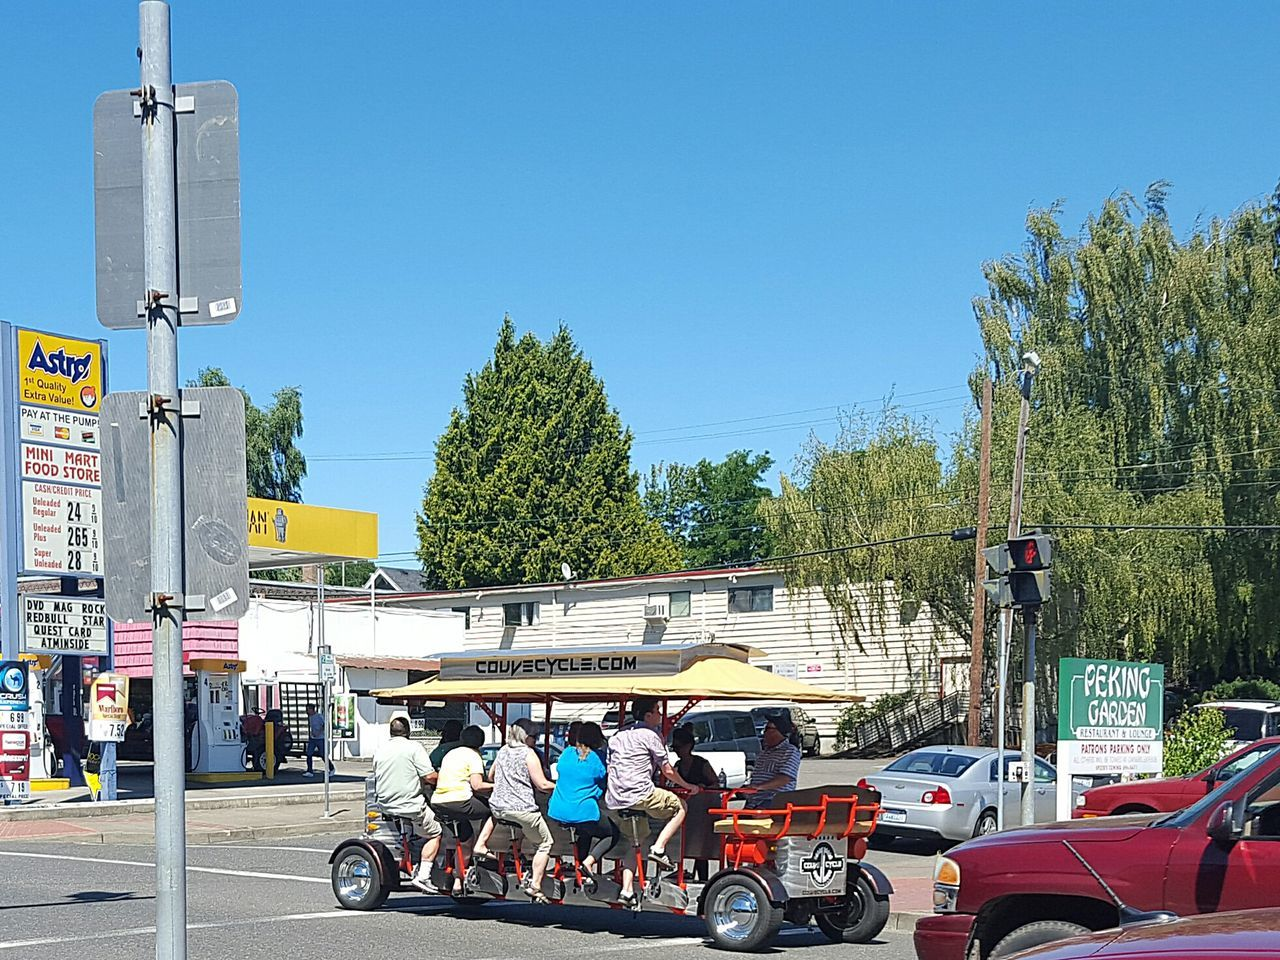 Couv Cycle down Main Street Mode Of Transport Land Vehicle Transportation City Street Pedal Power Pedalcar Pedal Pedalling Pedal Powered Unique Vehicles Summer Summertime Exercise Exploring The City Exploring The City Streets Pacific Northwest  PNW Washington State PNWonderland Vancouver, Washington Vancouver Washington Vancouver Live For The Story Let's Go. Together. Sommergefühle